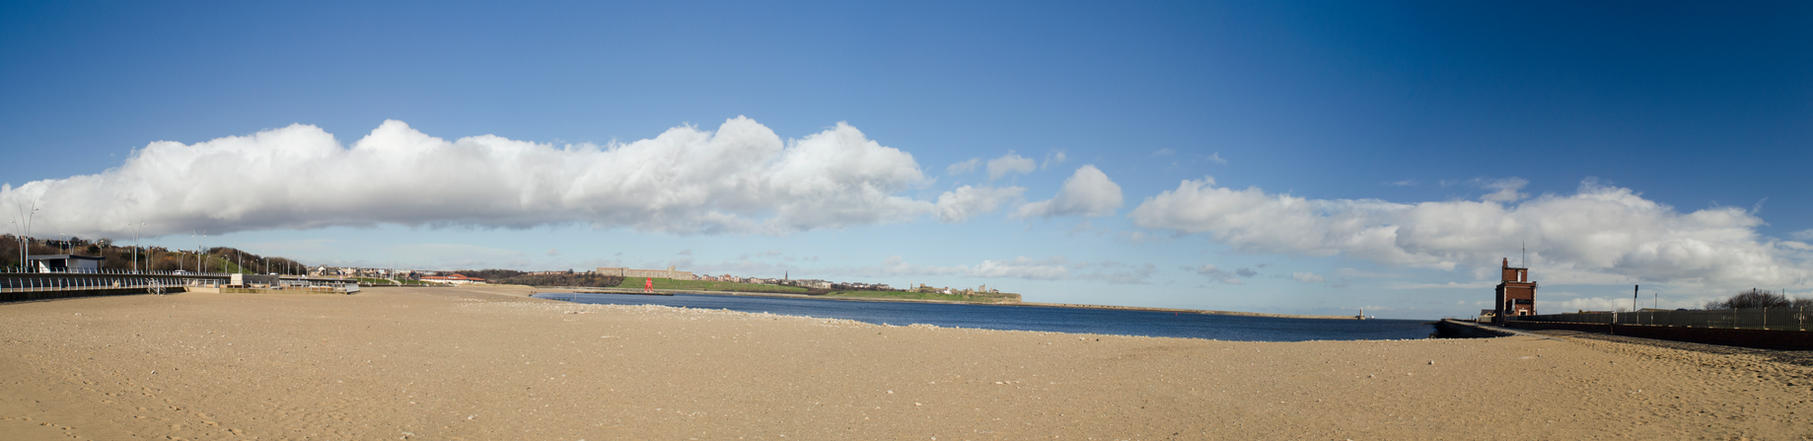 South Shields Beach Panorama by newcastlemhull